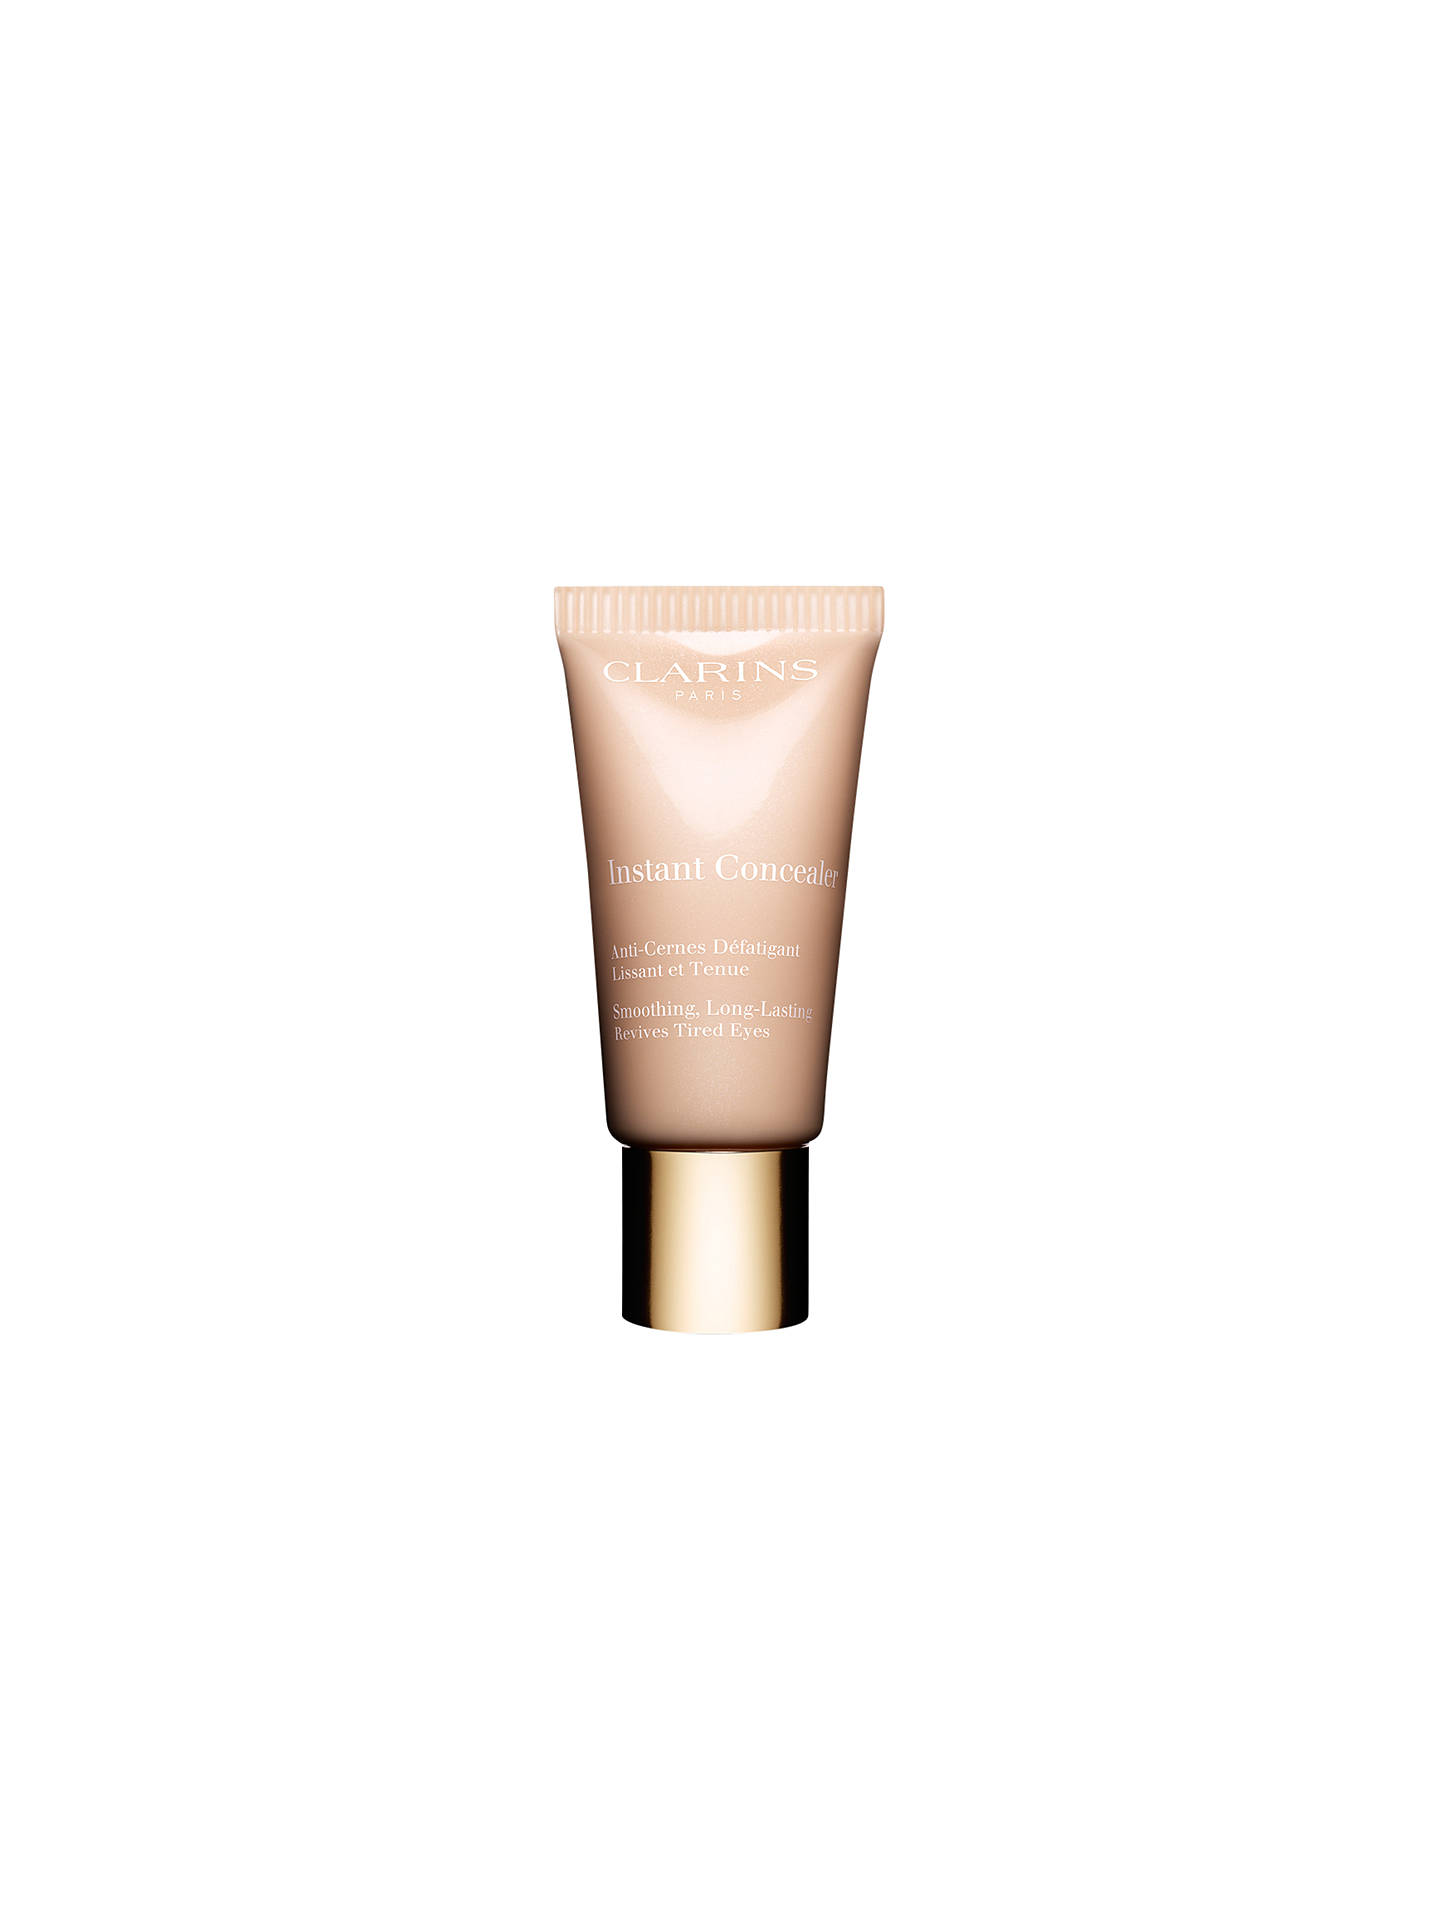 Buy Clarins Instant Concealer, Shade 01, 15ml Online at johnlewis.com